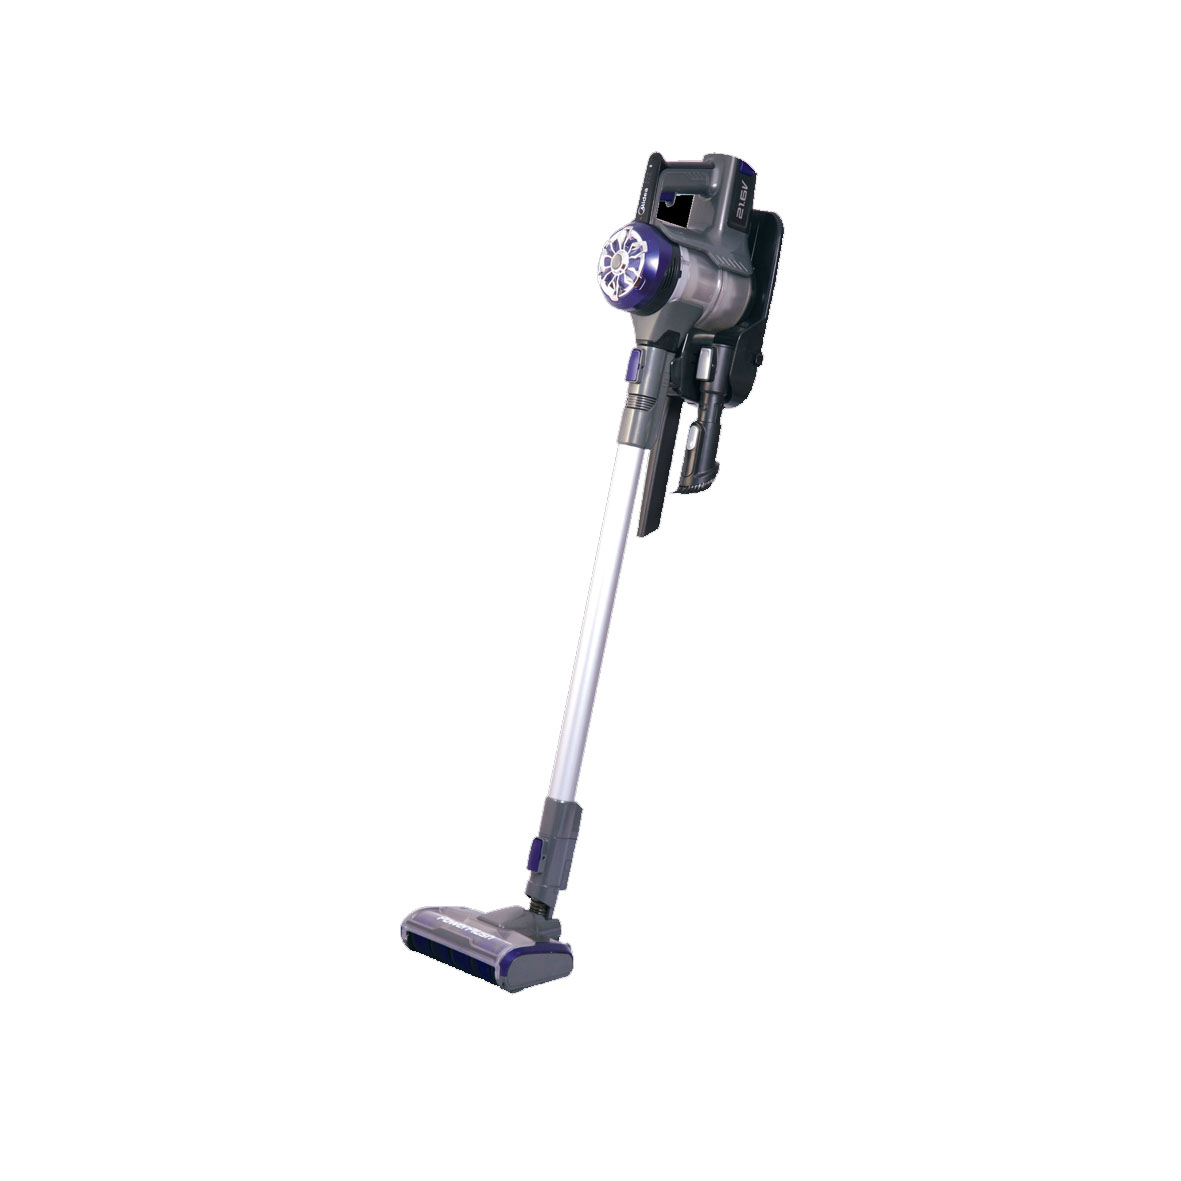 The Midea MVC-P1217Z is a cordless rechargeable vacuum cleaner.